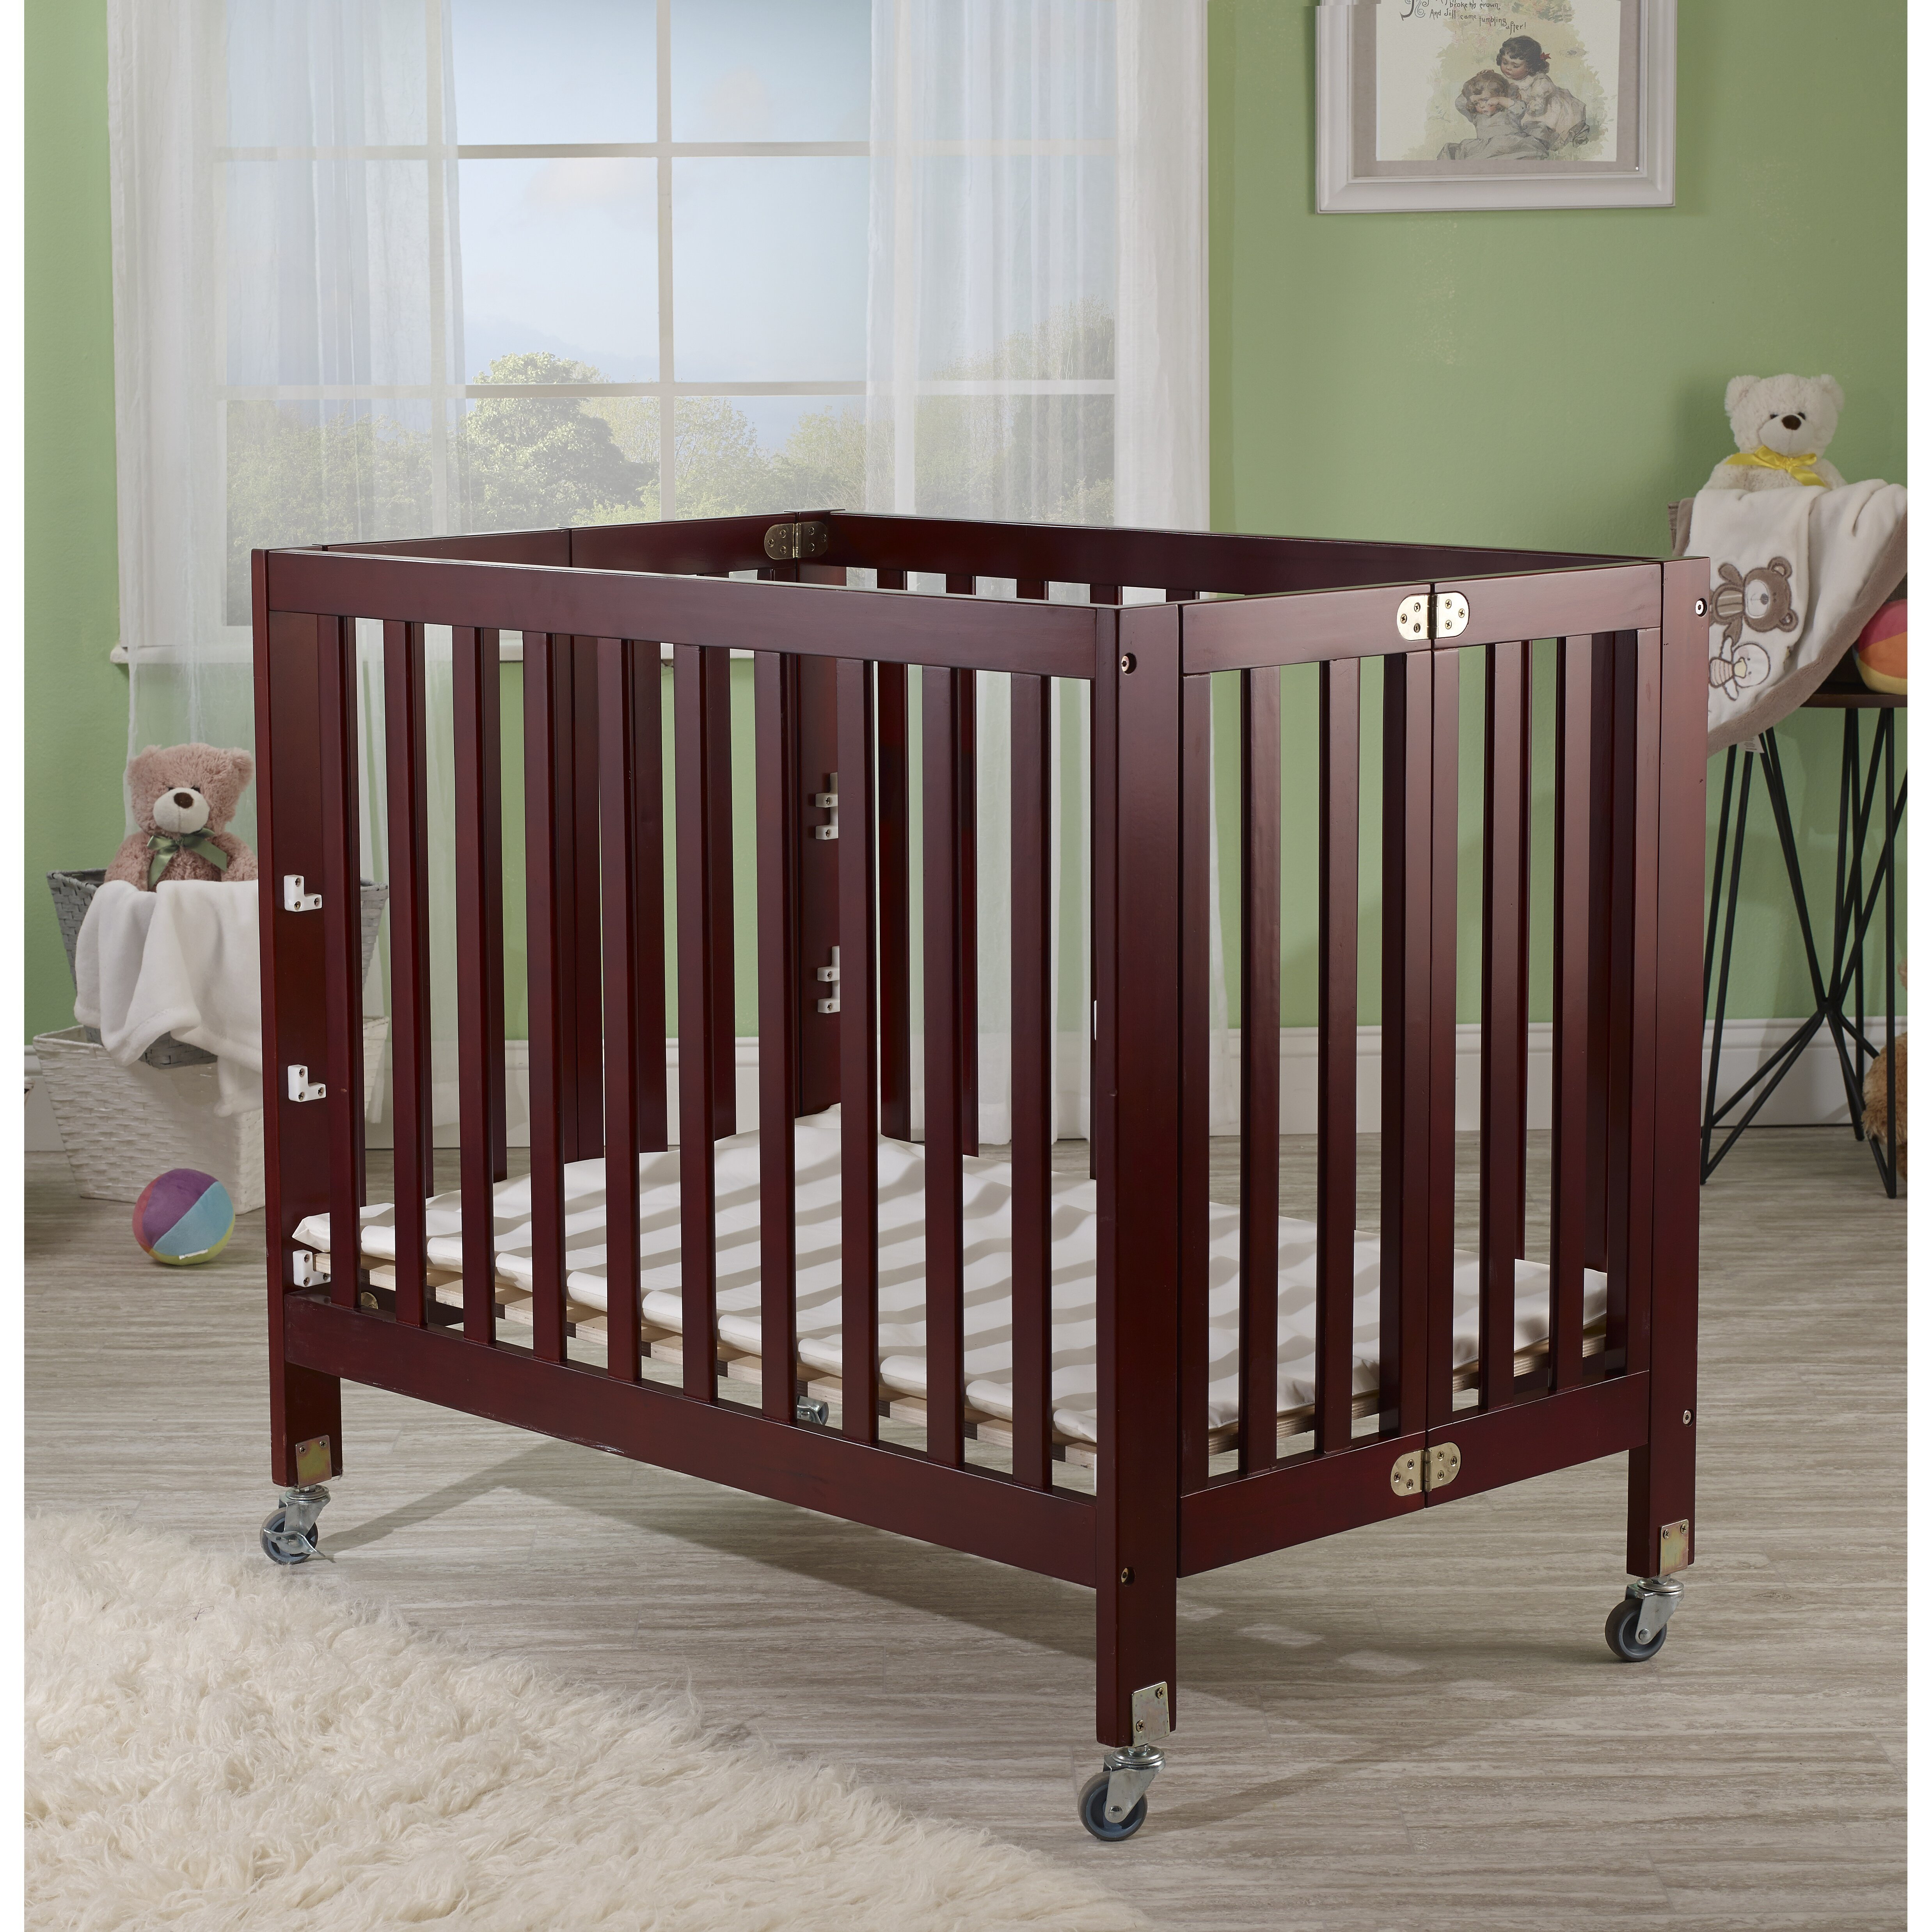 Baby cribs for daycare centers - Roxy Portable Crib